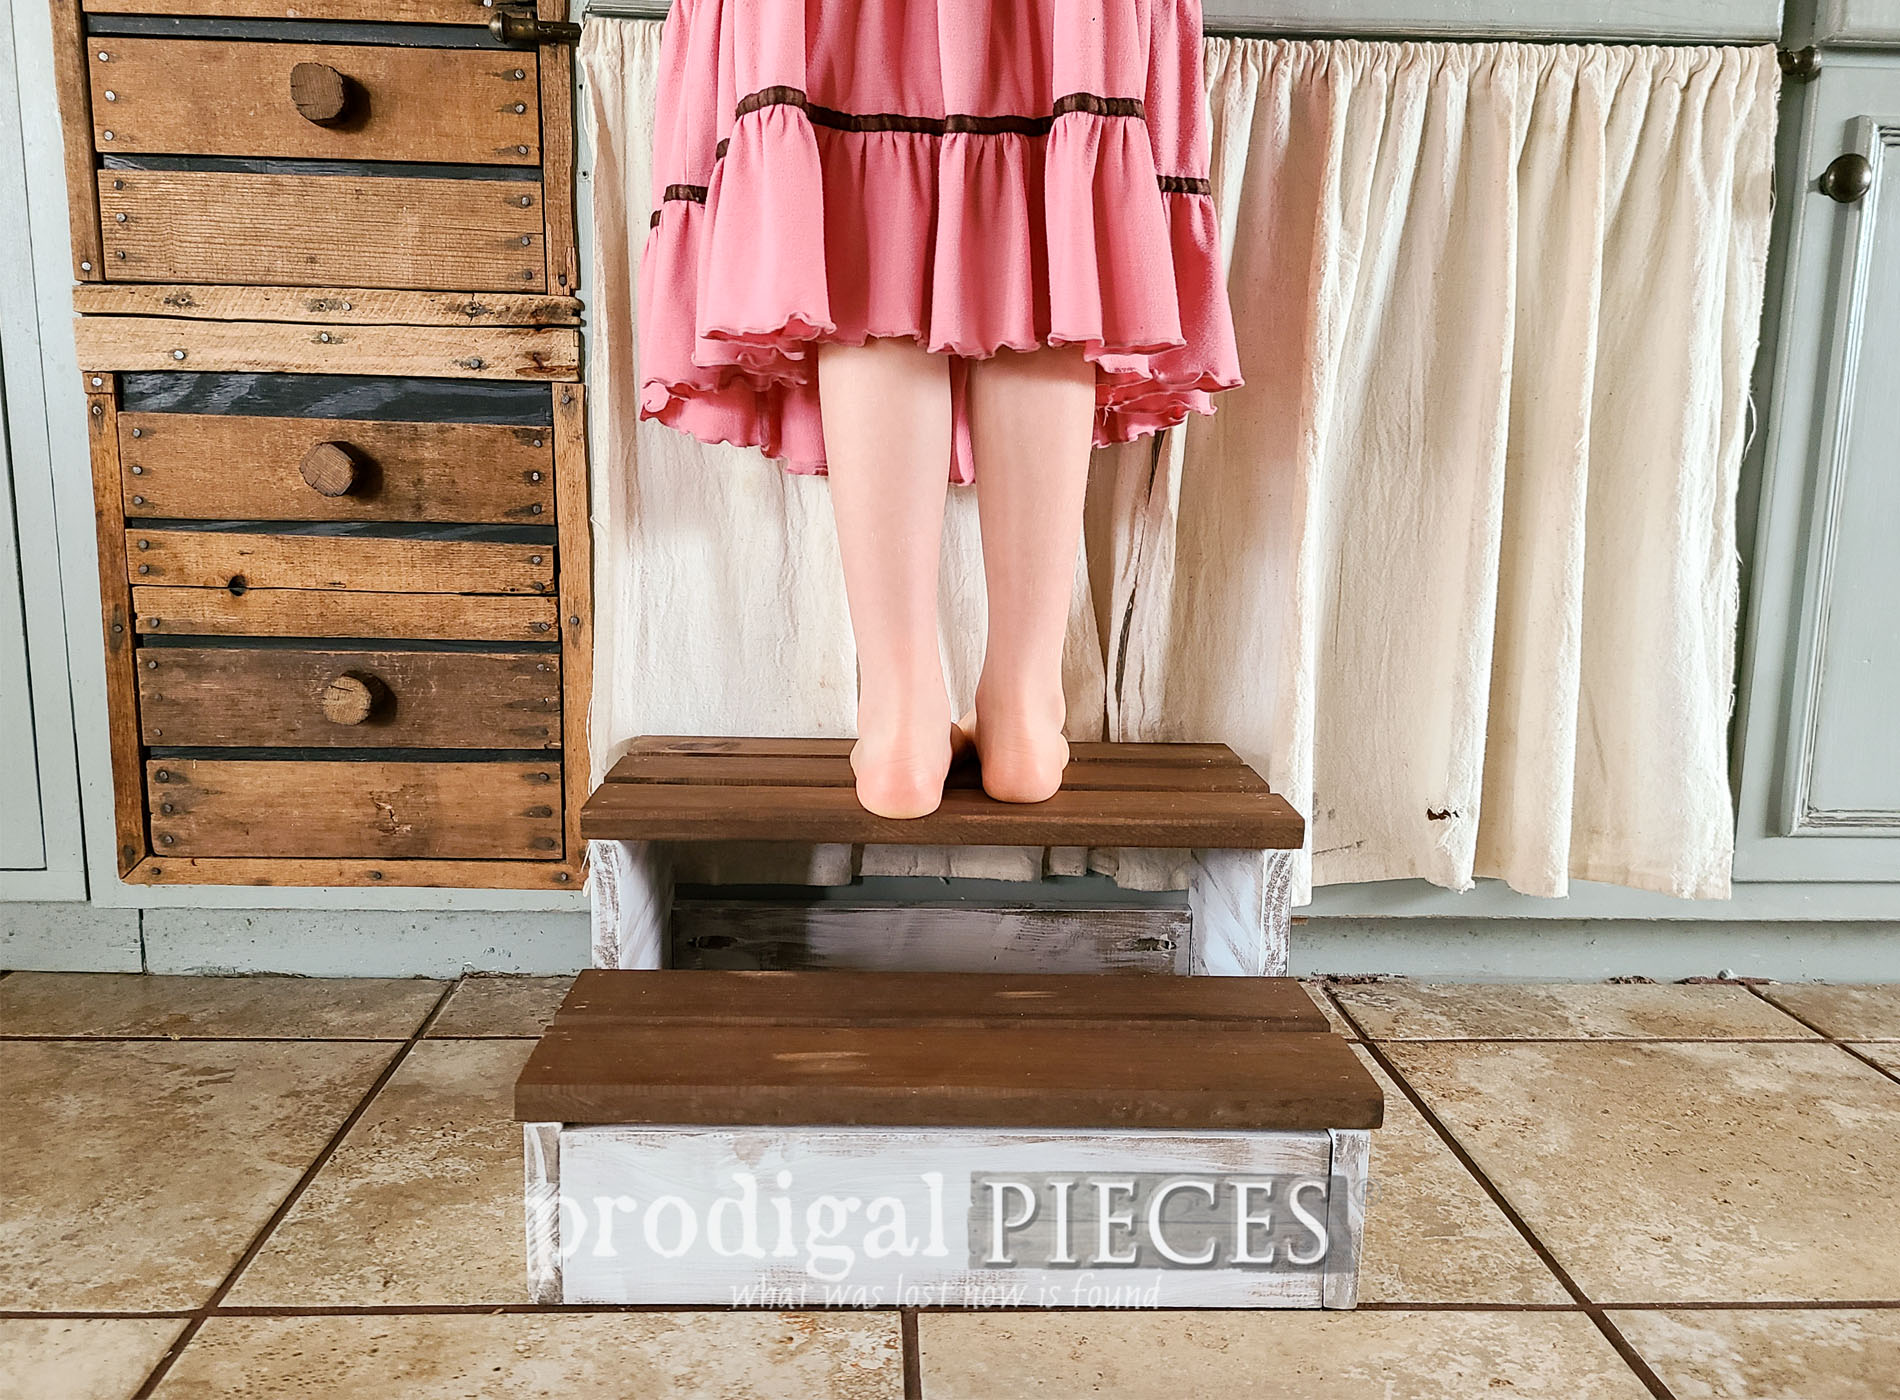 Featured DIY Wood Slat Projects by Larissa of Prodigal Pieces | prodigalpieces.com #prodigalpieces #diy #woodworking #handmade #home #homedecor